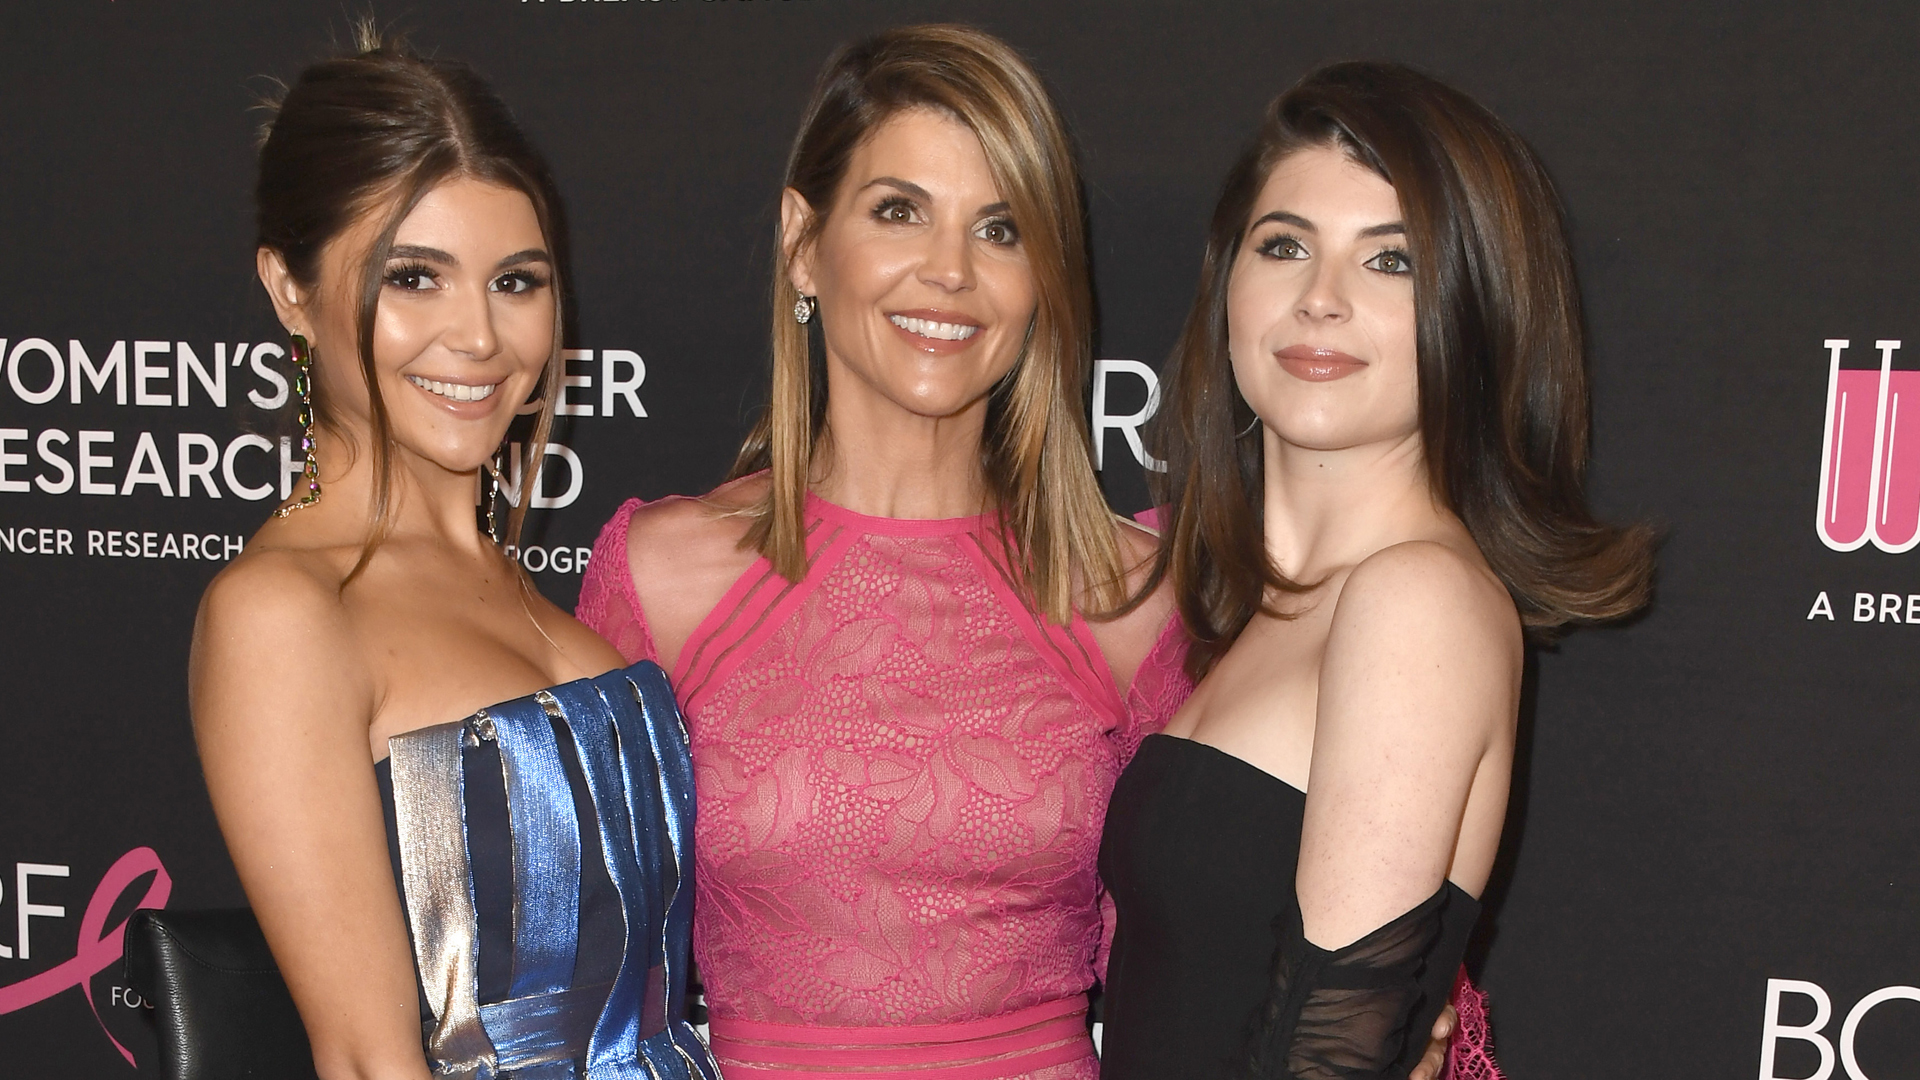 Olivia Jade Giannulli, Lori Loughlin and Isabella Rose Giannulli attend The Women's Cancer Research Fund's An Unforgettable Evening Benefit Gala at the Beverly Wilshire Four Seasons Hotel on Feb. 28, 2019, in Beverly Hills. (Credit: Frazer Harrison/Getty Images)